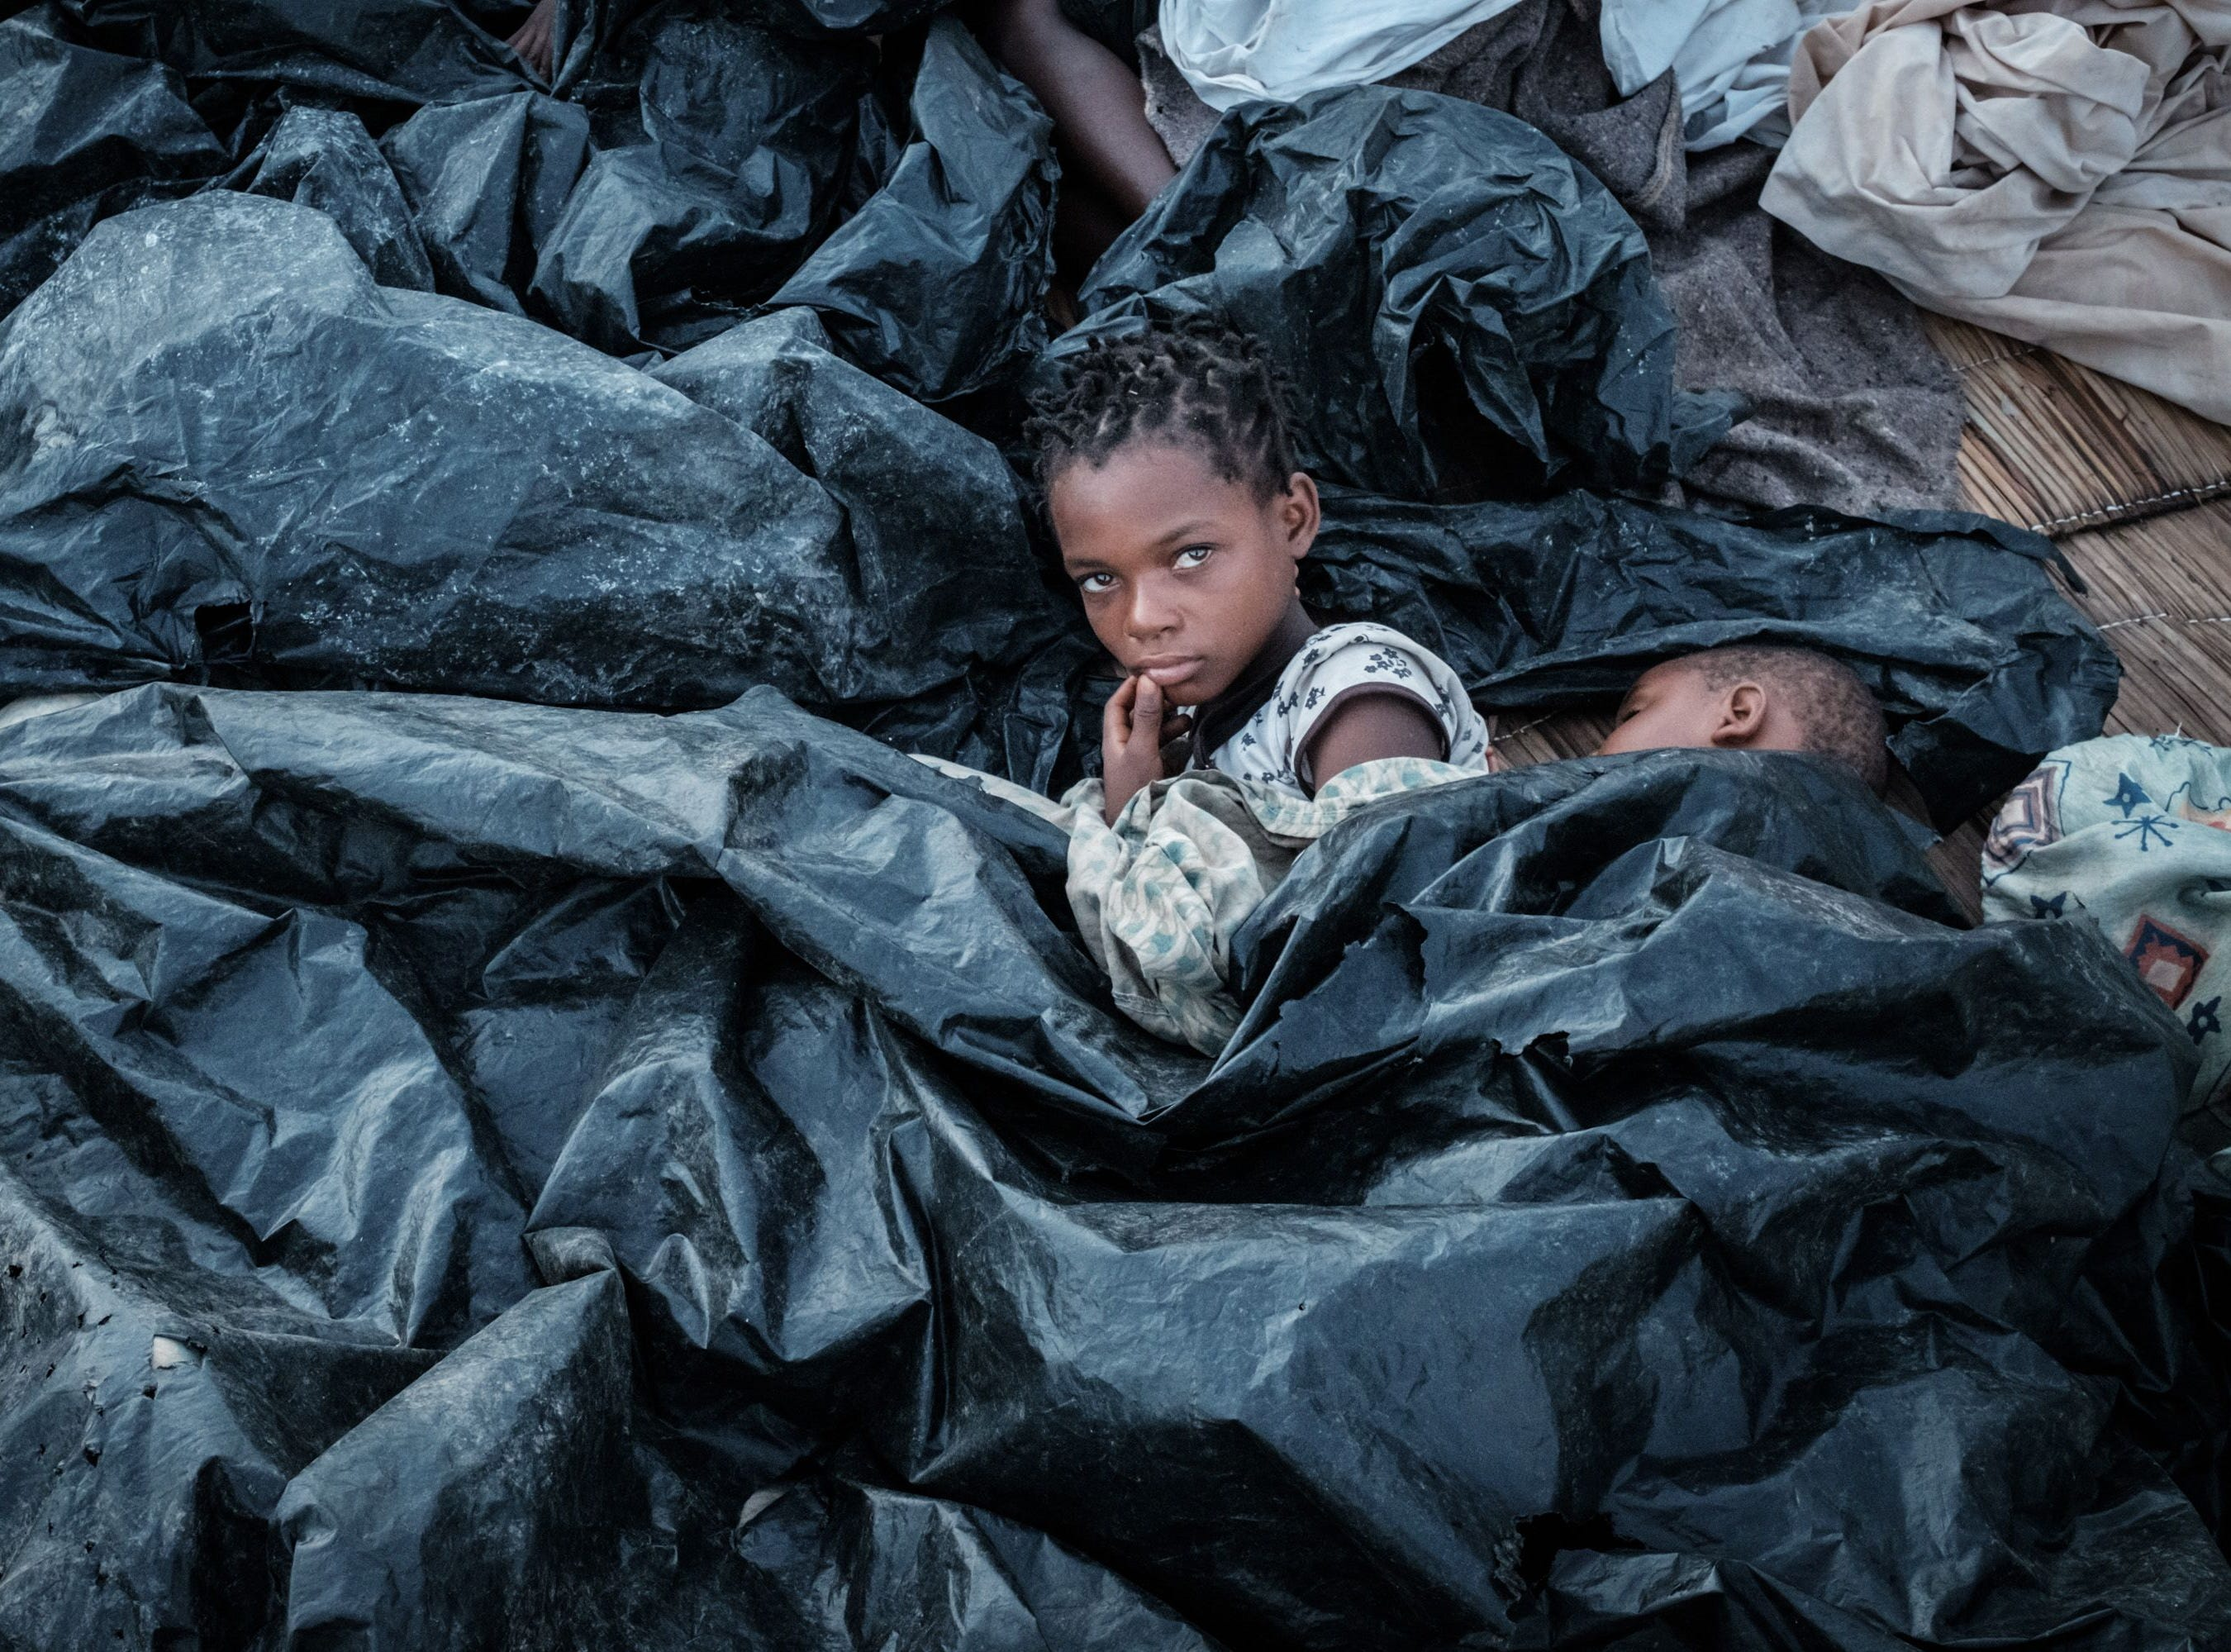 Enia Joaquin Luis, 11, wakes up beside her sister Luisa, 6, under plastic sheets for protect themselves from rain as they stay in shelter at the stands of Ring ground in Buzi, Mozambique, on March 23, 2019.